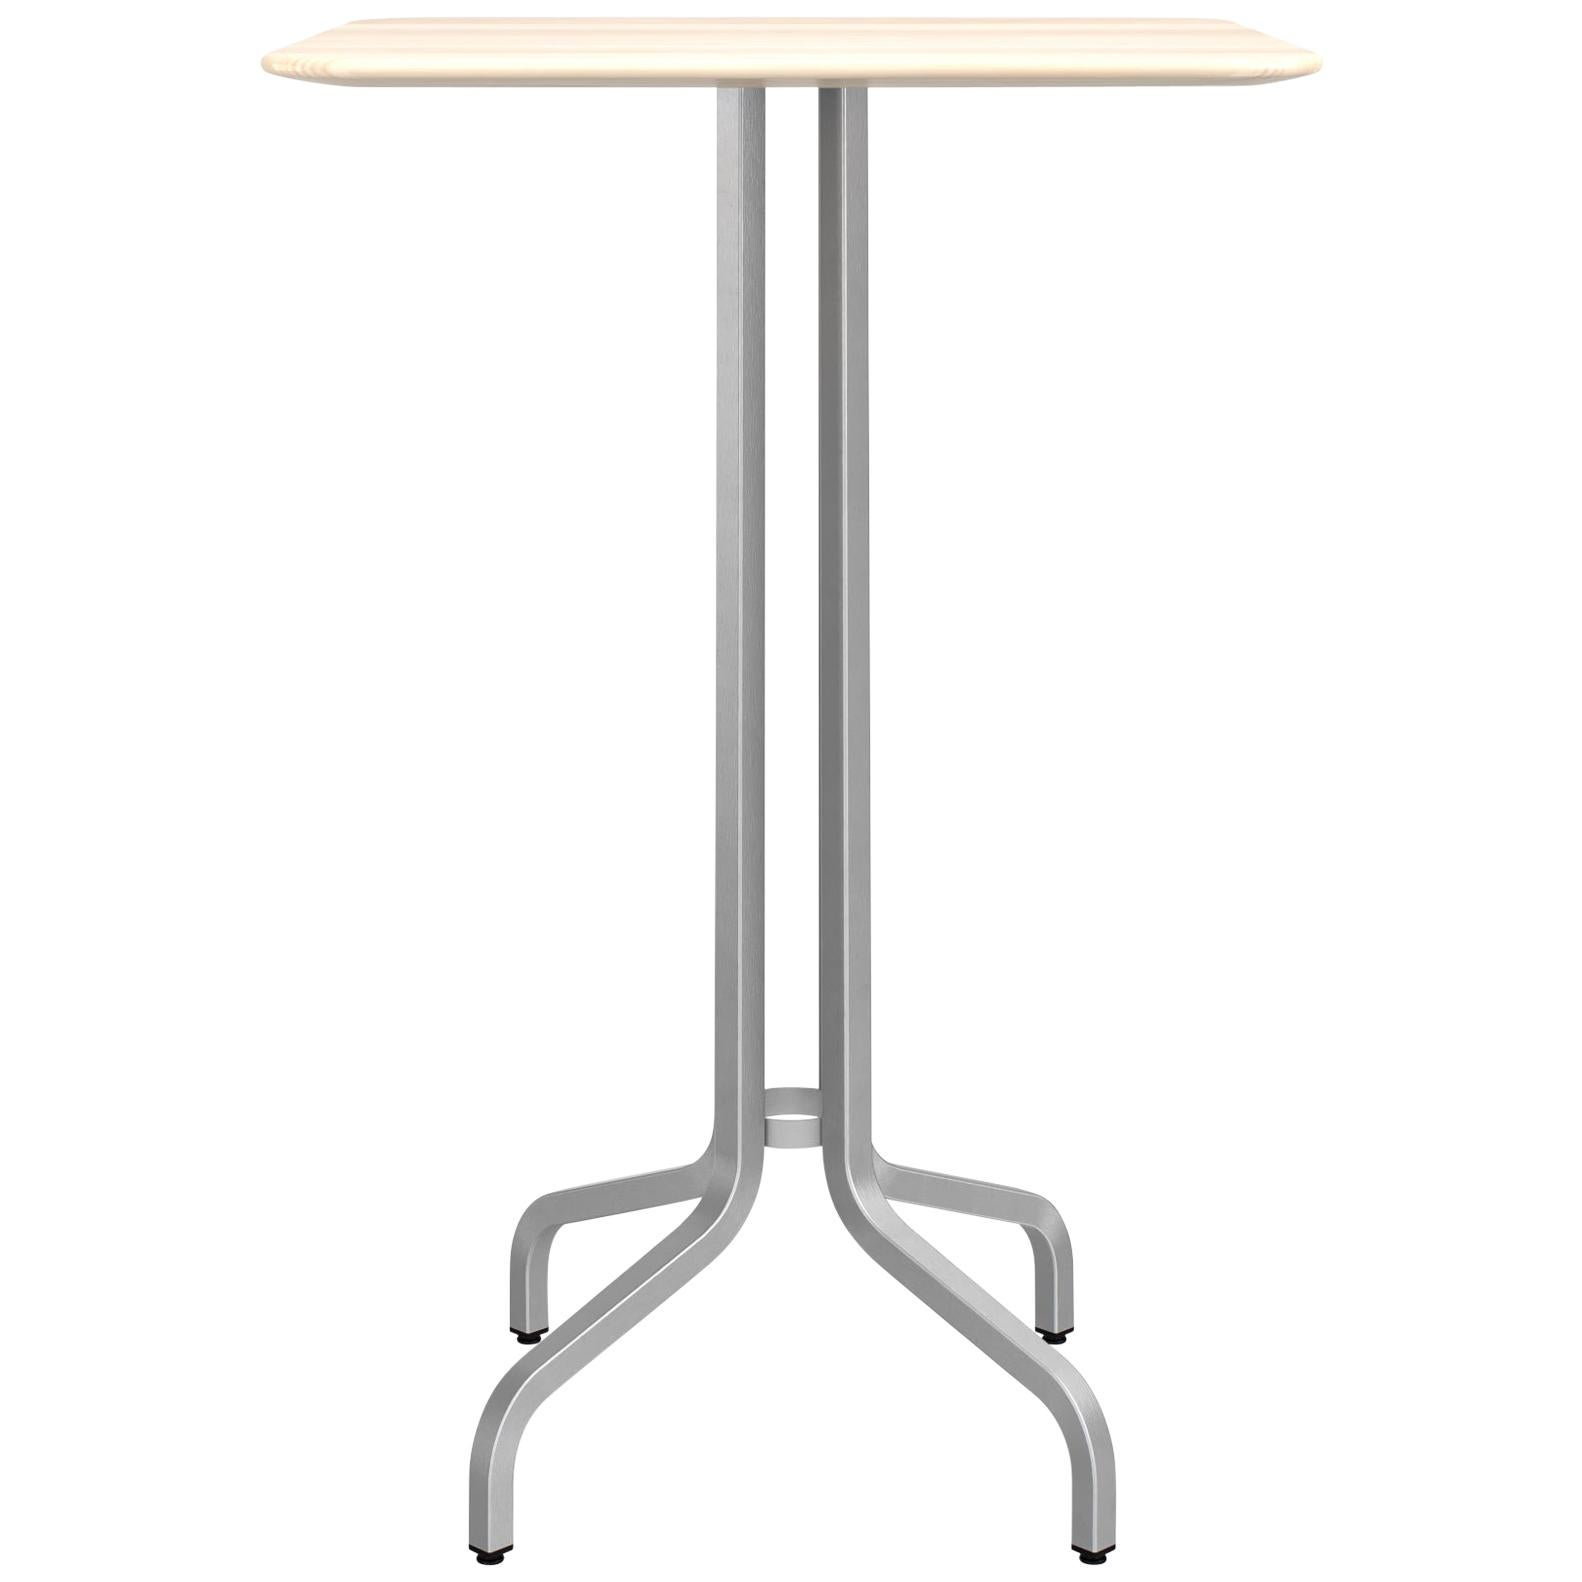 Emeco 1 Inch Large Bar Table with Aluminum Legs & Wood Top by Jasper Morrison